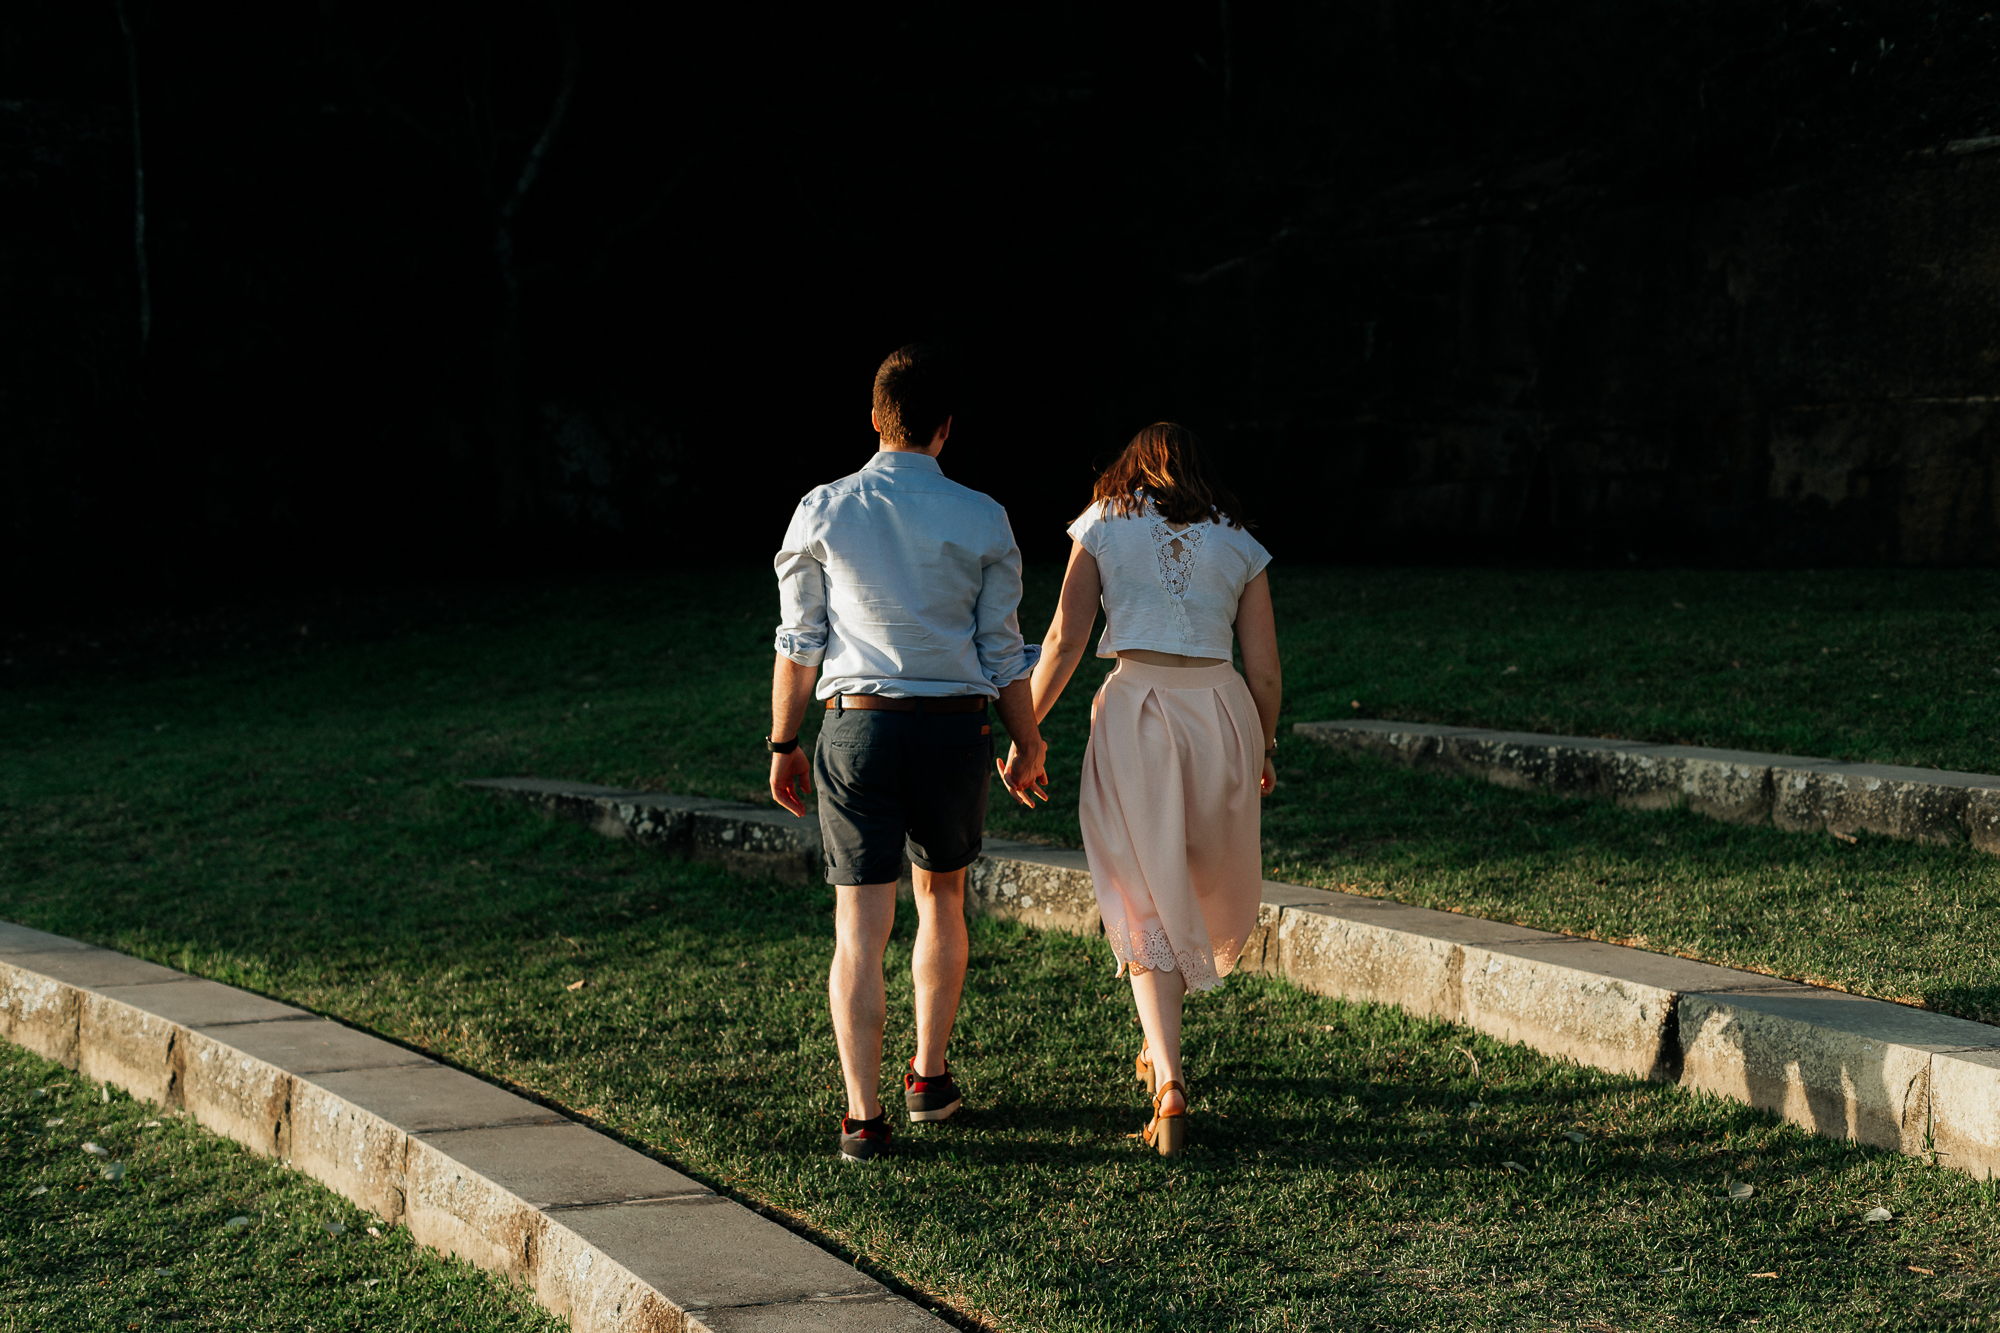 Amanzi and Steven_Engagement_Sydney_Holly Medway Photography-28.JPG